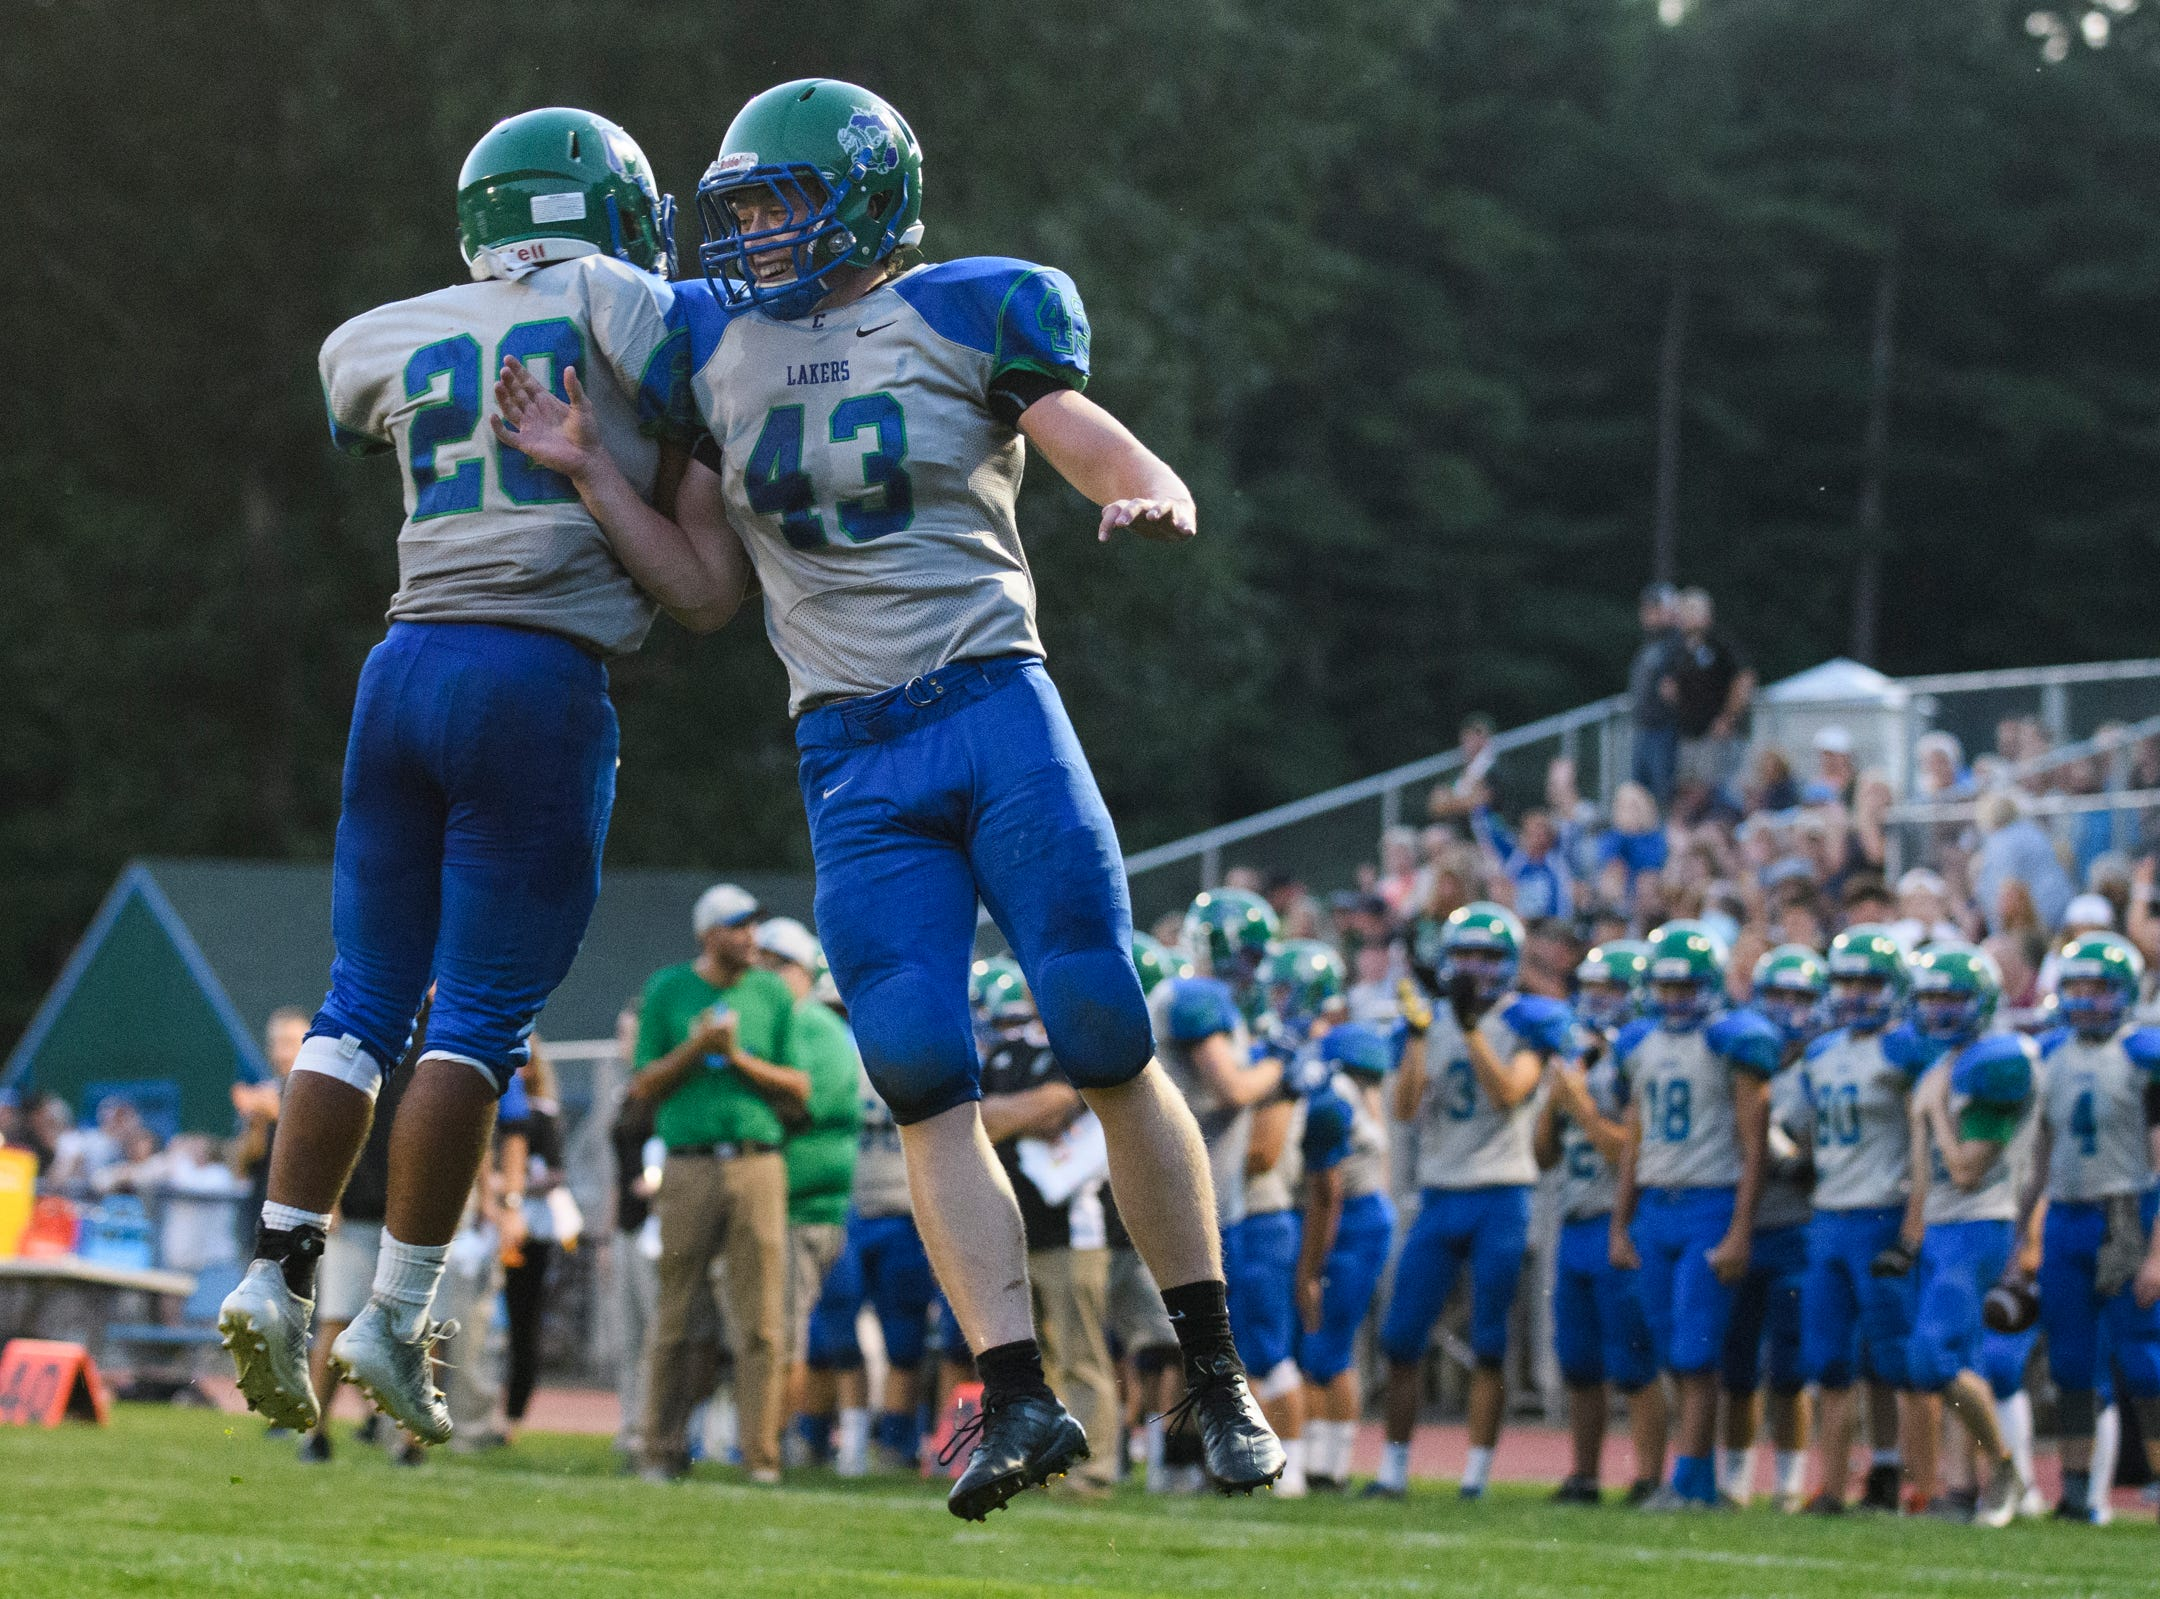 Colchester's Max Anderson (43) and Brod Stannard (20) celebrate a touchdown during the boys high school football game between Middlebury and Colchester at Colchester high school on Friday night August 31, 2018 in Colchester.